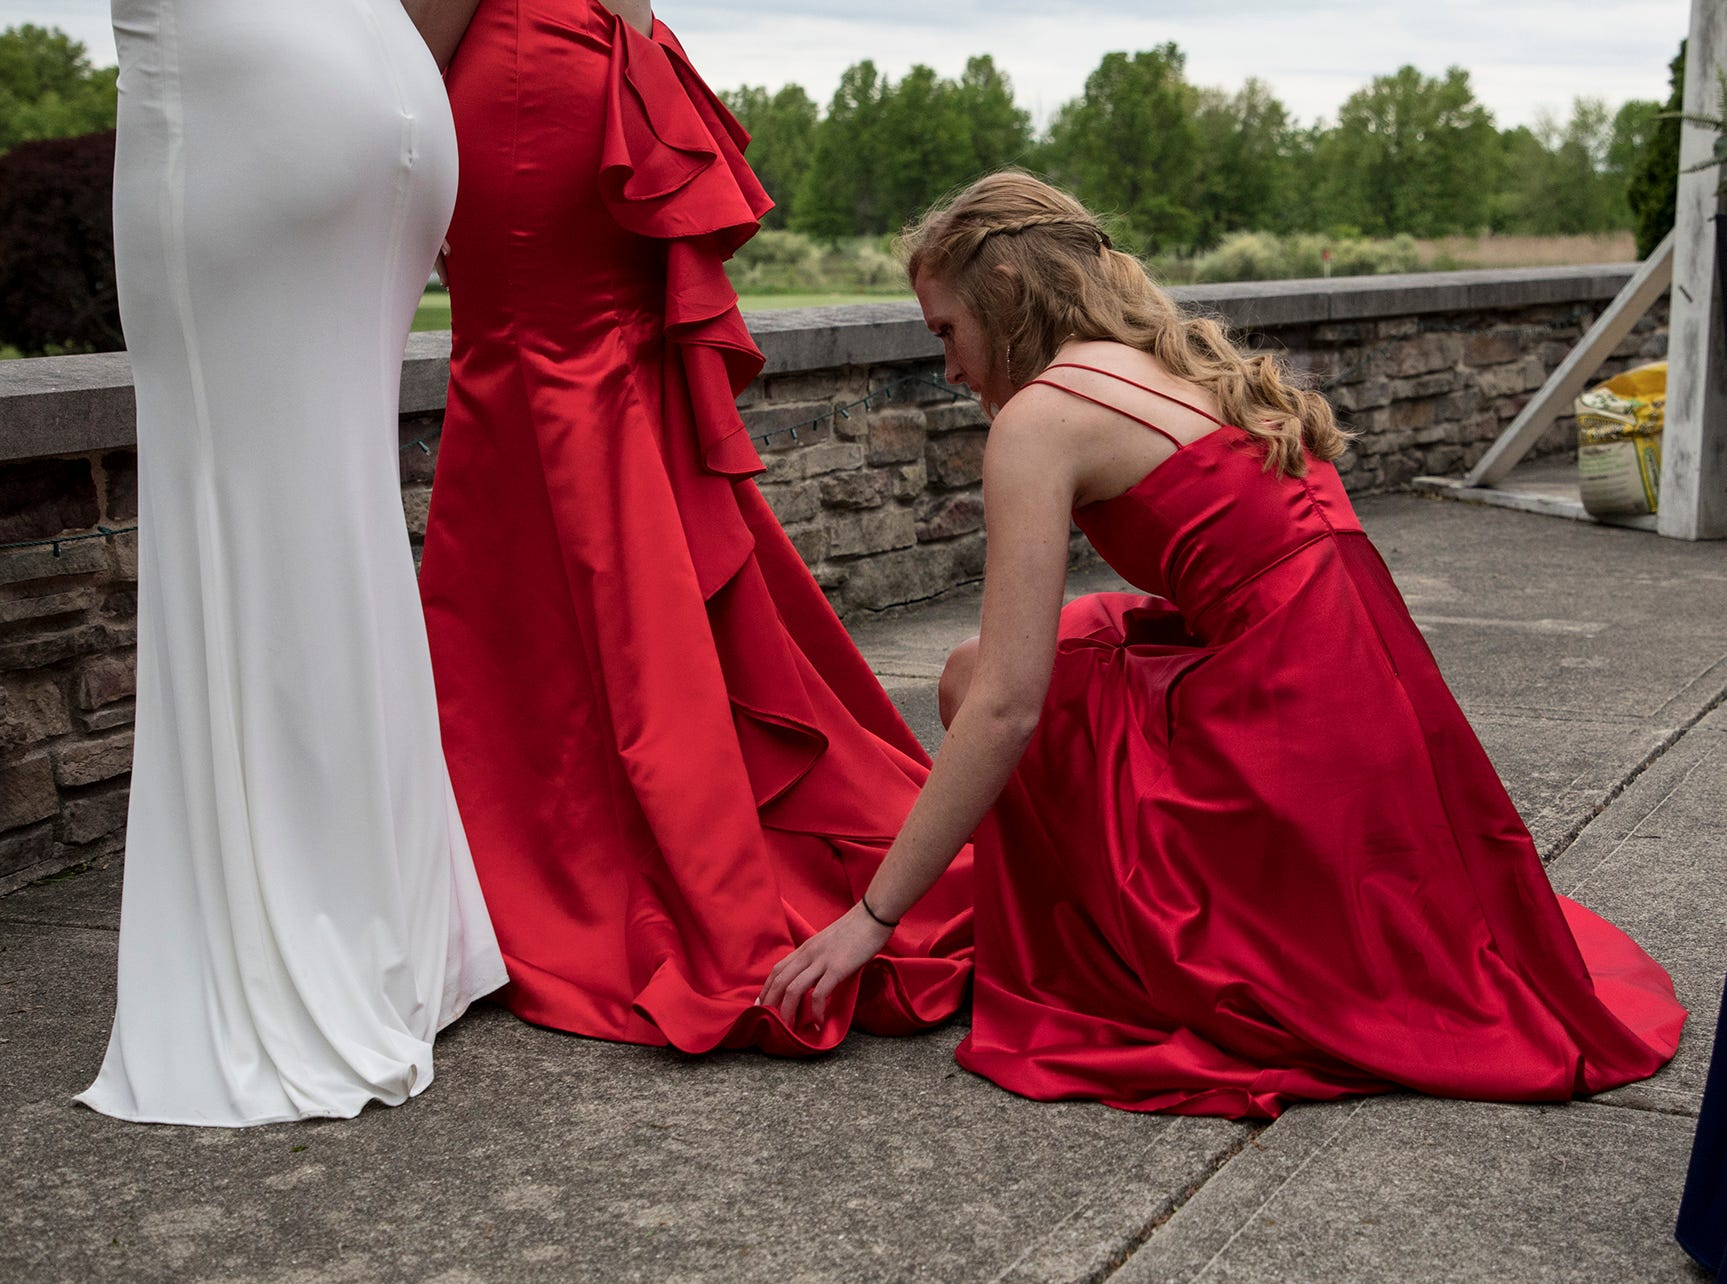 Sidney Blair fixes the dresses of her friends, Ryan Helmke and McKenzie Andrix before their friend, Reagan Helmke, takes their photo at the 2019 Johnstown prom at the Medallion Club in Westerville.